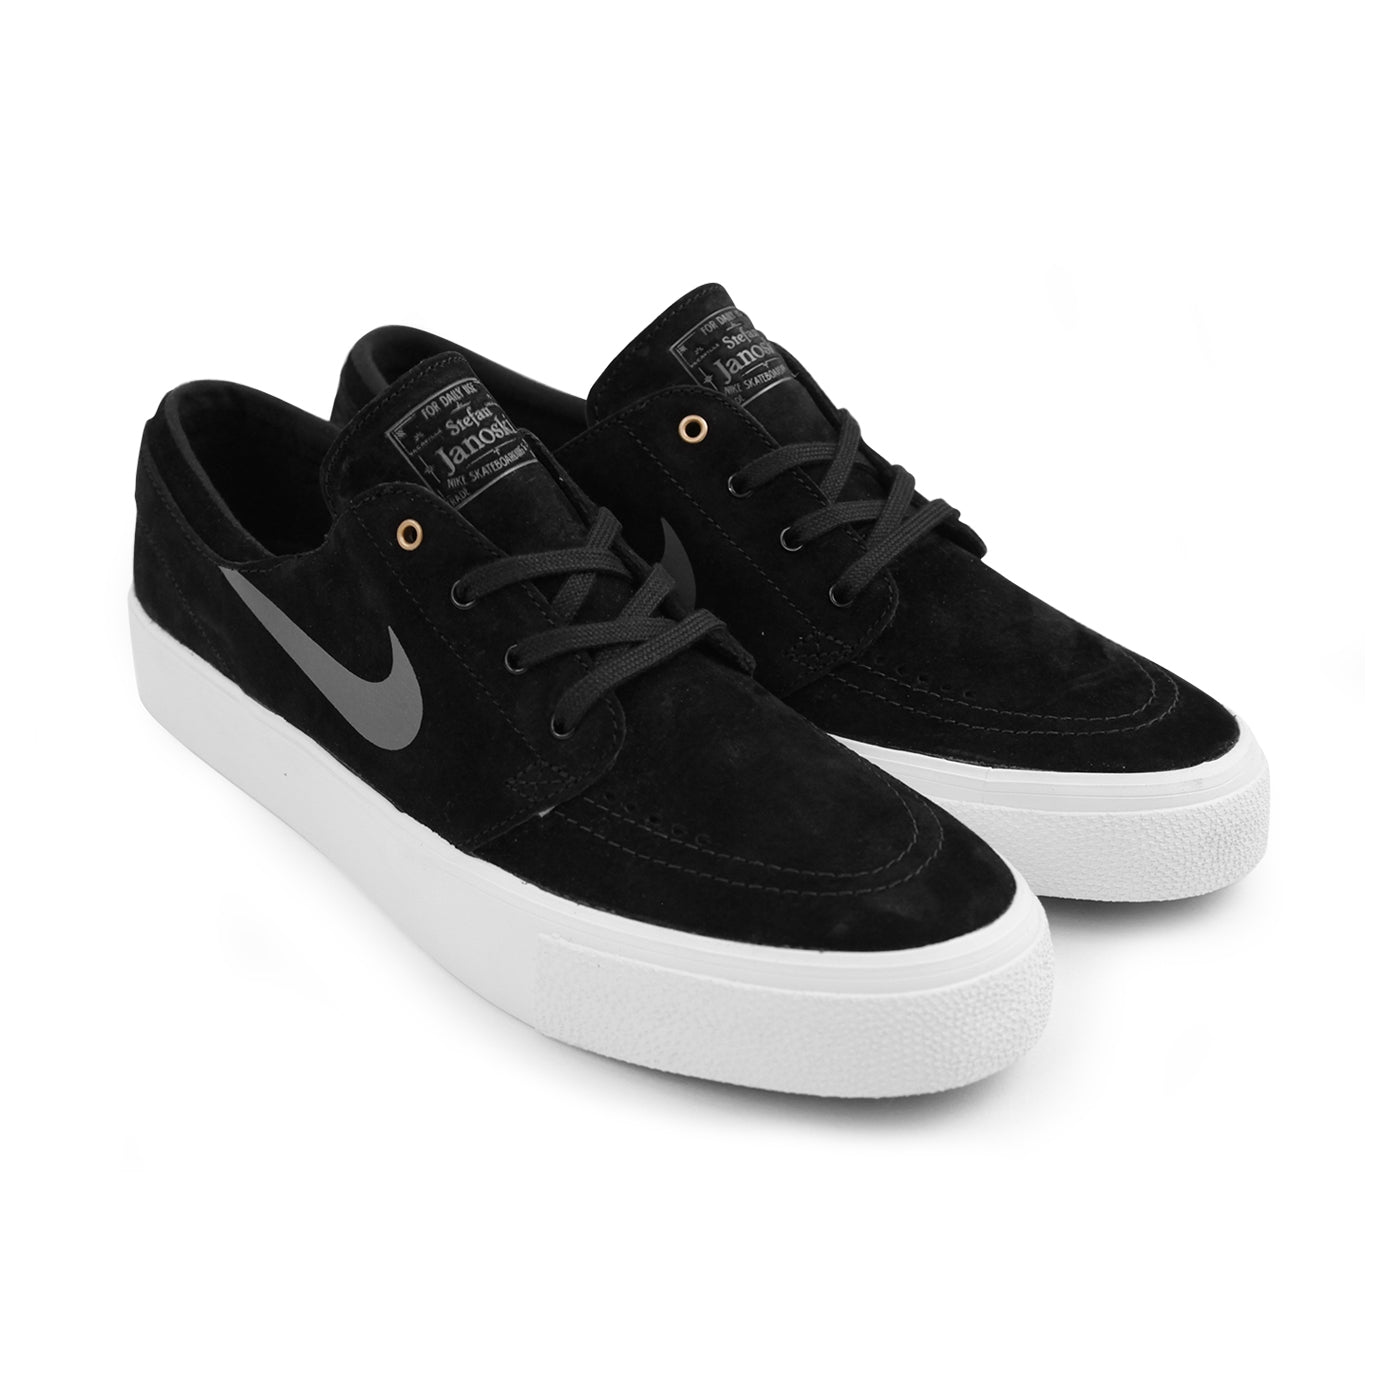 Stefan Janoski HT Shoes in Black   Dark Grey - Metallic Gold by Nike ... acc4fcf86